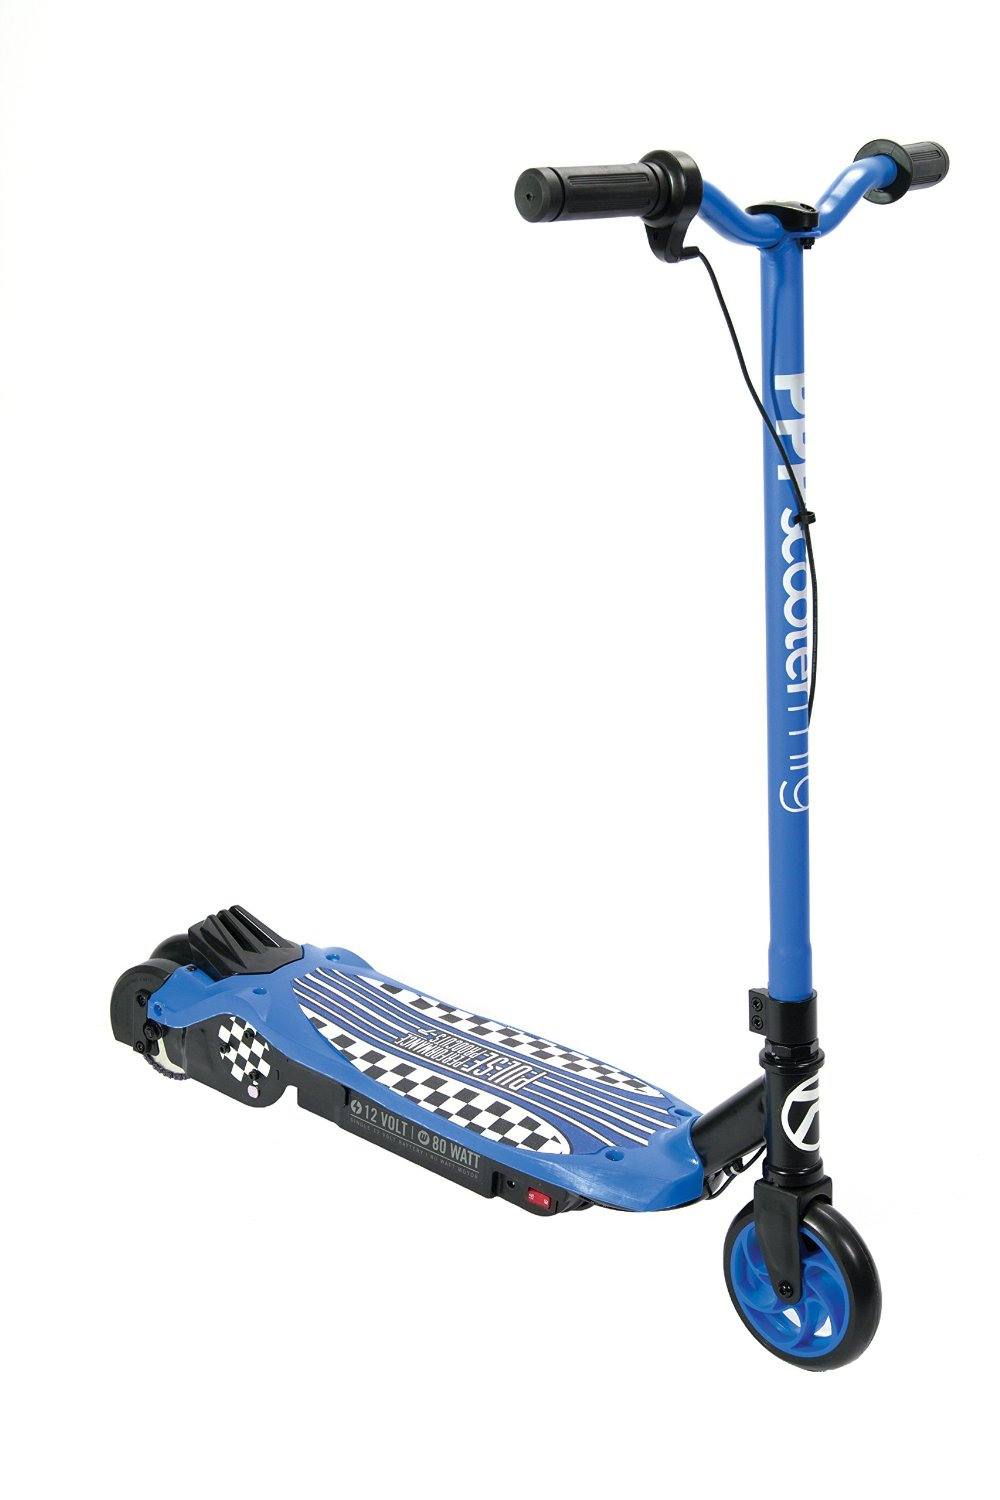 Top 10 Best Electric Scooters That Are Fun To Ride